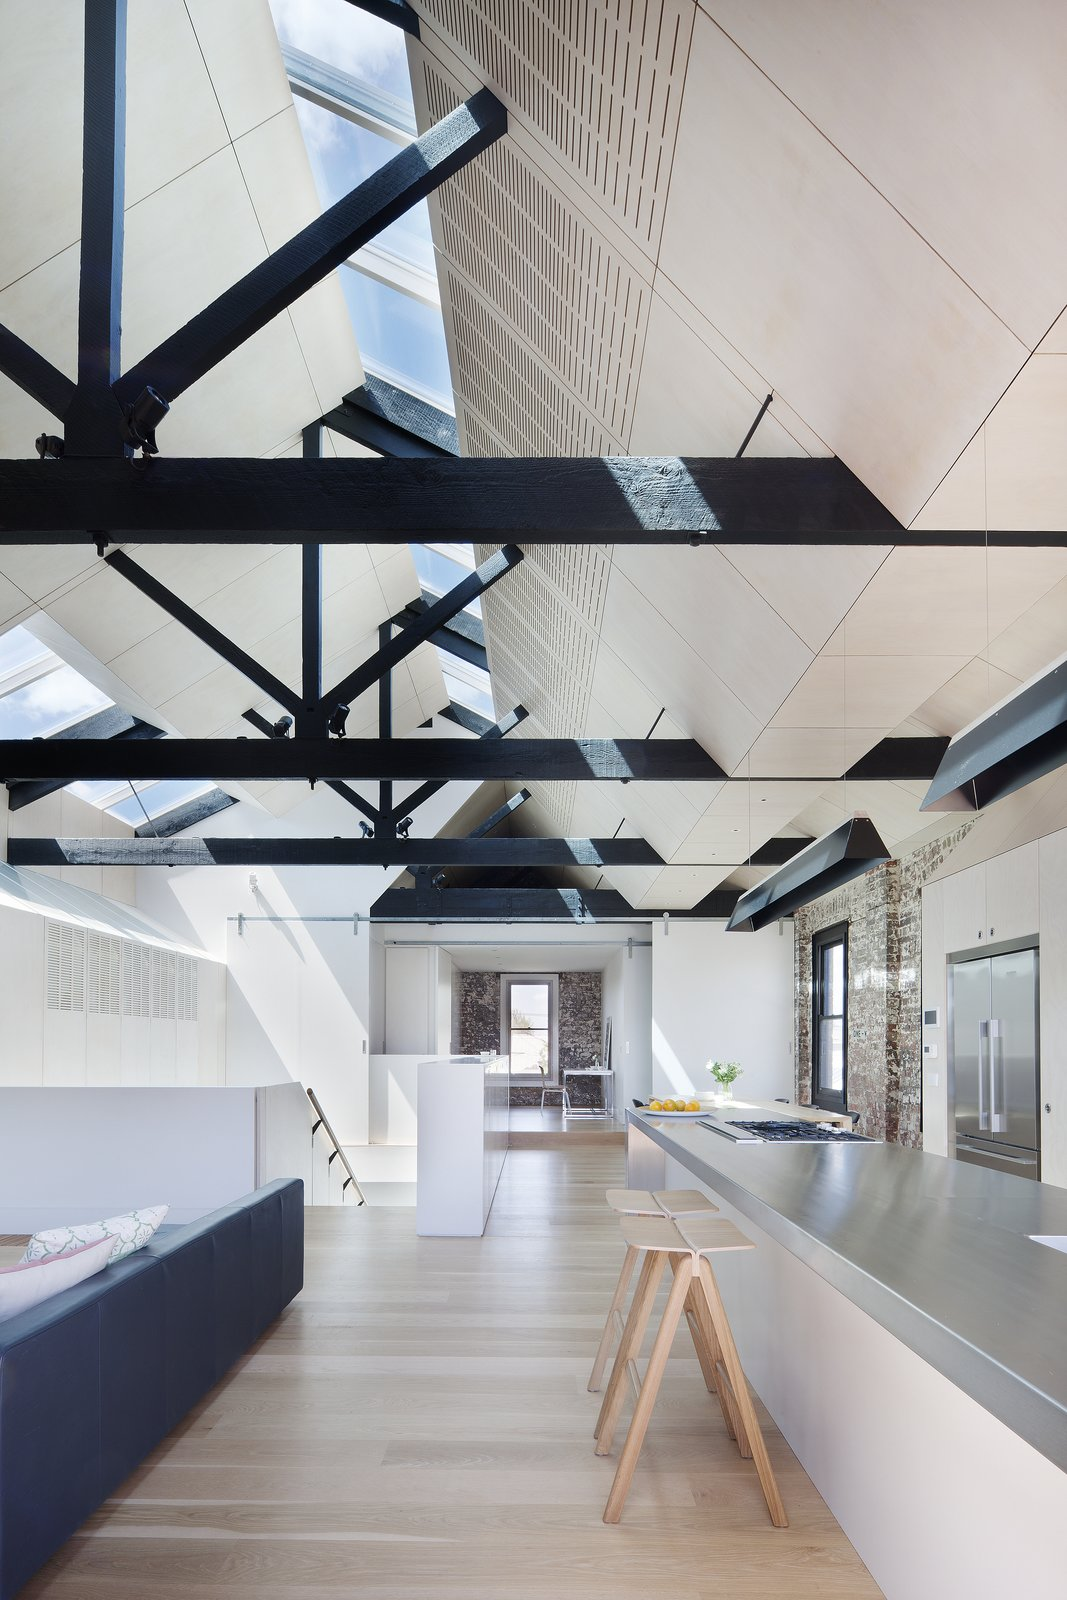 """The fact that the external walls were built to the site's boundary led to the solution of skylights as the one of the few means of introducing north light and good cross ventilation into the building,"" Simpson continues. The hanging lights are from Artemide while the hotplates and cooktops are from Barazza."